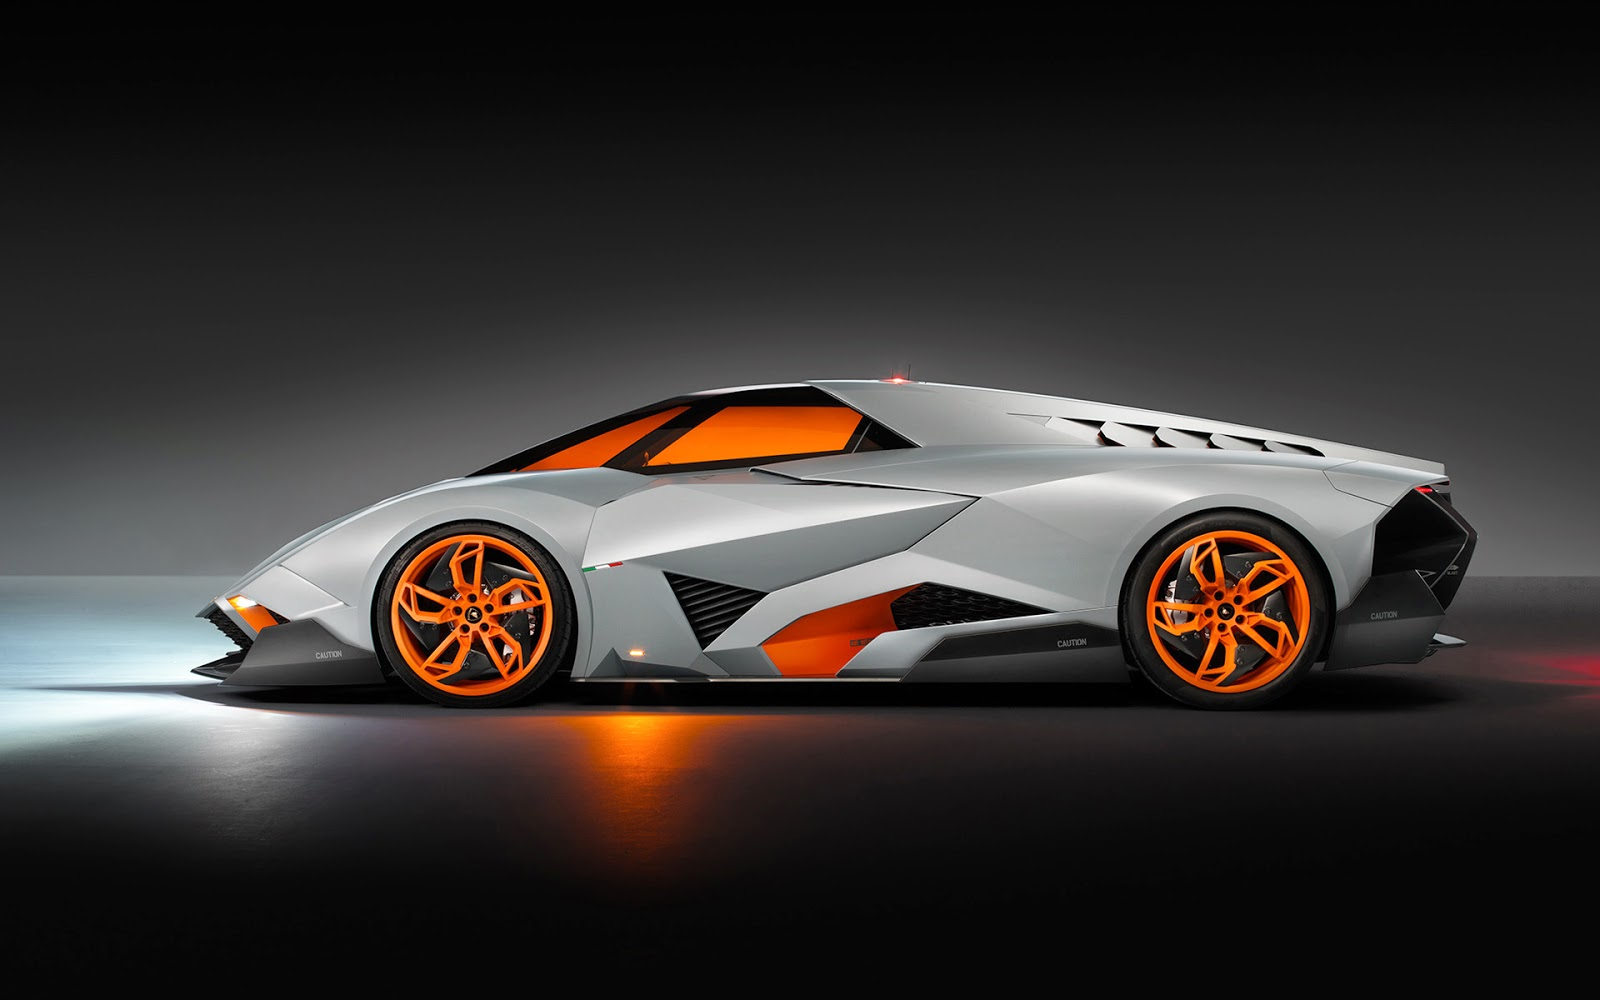 Car Wallpapers 2014 Iphone car fast cool cars sports cars 1600x1000